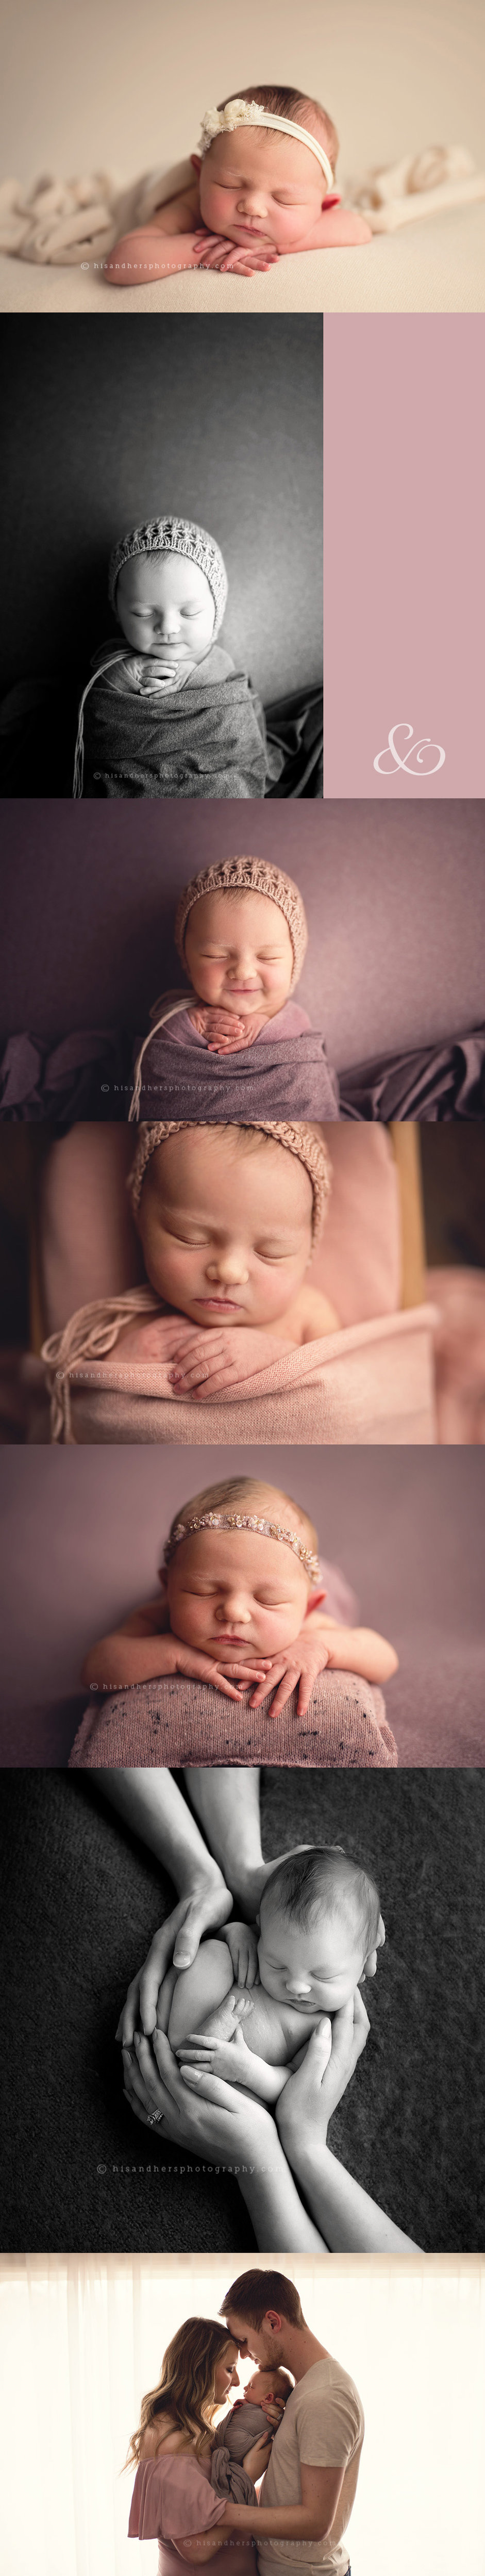 des moines iowa central iowa midwest newborn photographer baby girl photo session